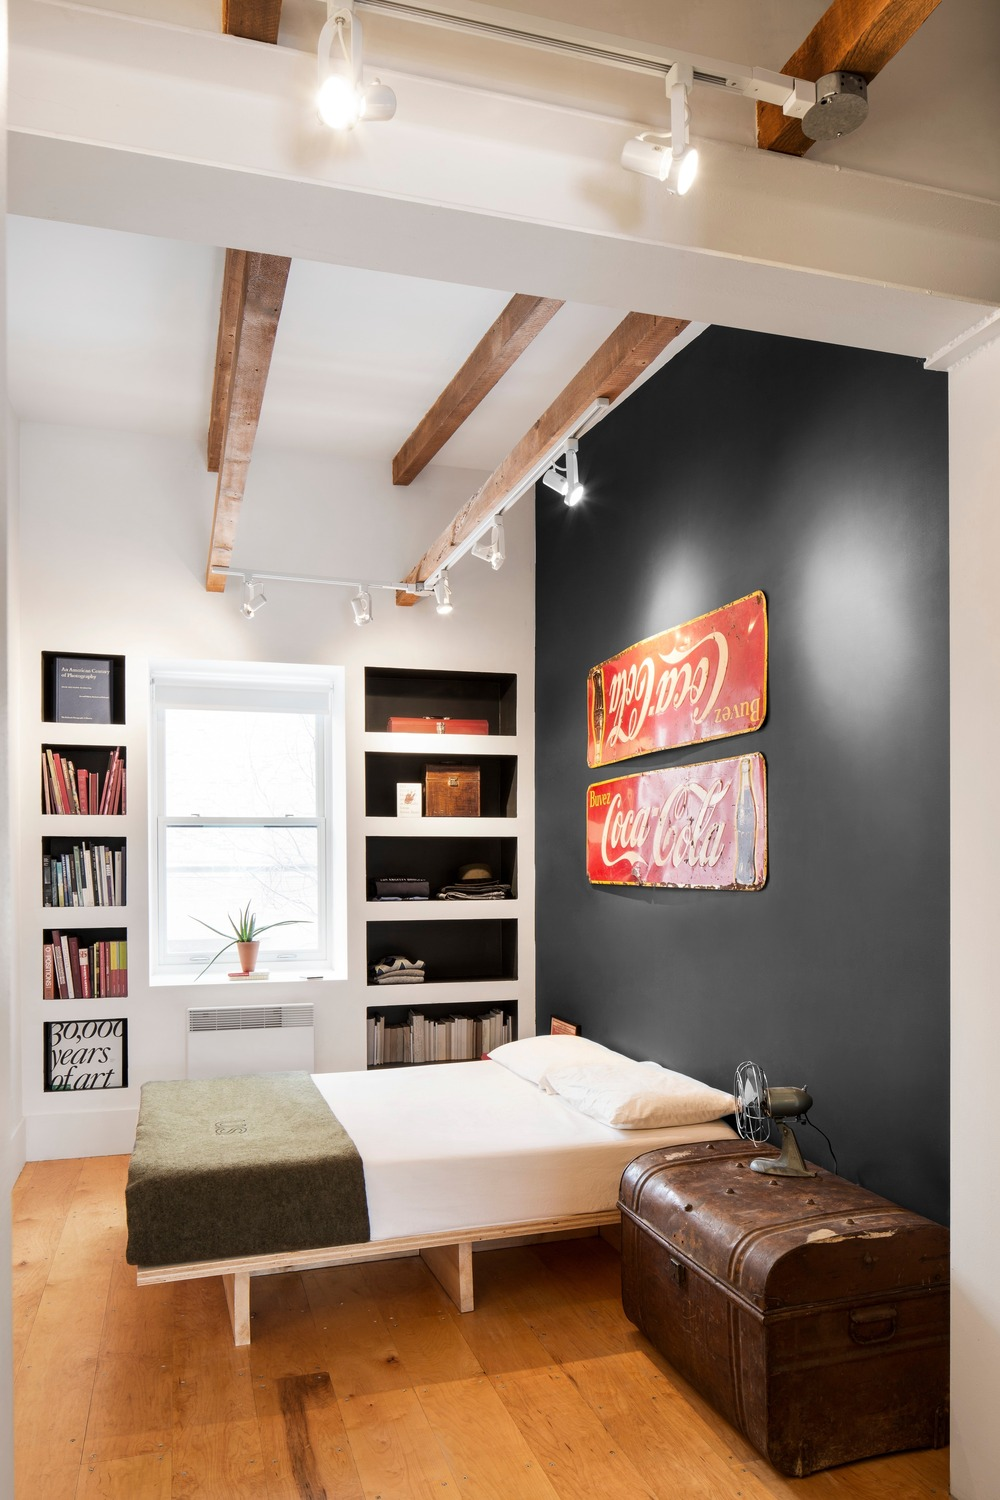 1561625248 738 modern bedroom shelves that really bring the room together - Modern Bedroom Shelves That Really Bring The Room Together